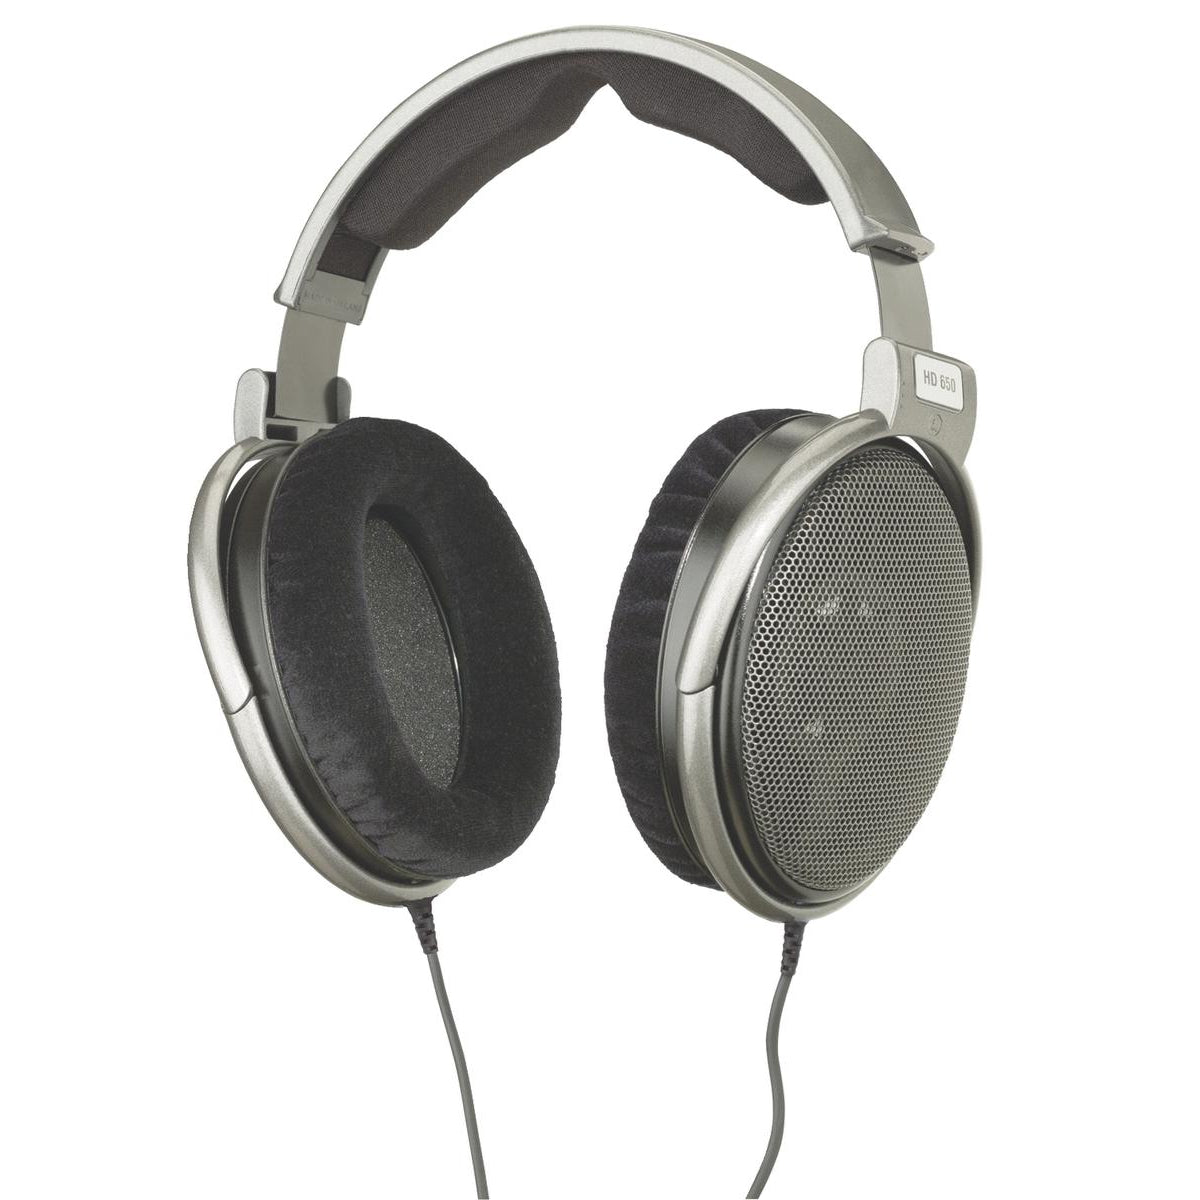 Sennheiser HD 650 HD Series Audiophile Headphones - Audio Leaders